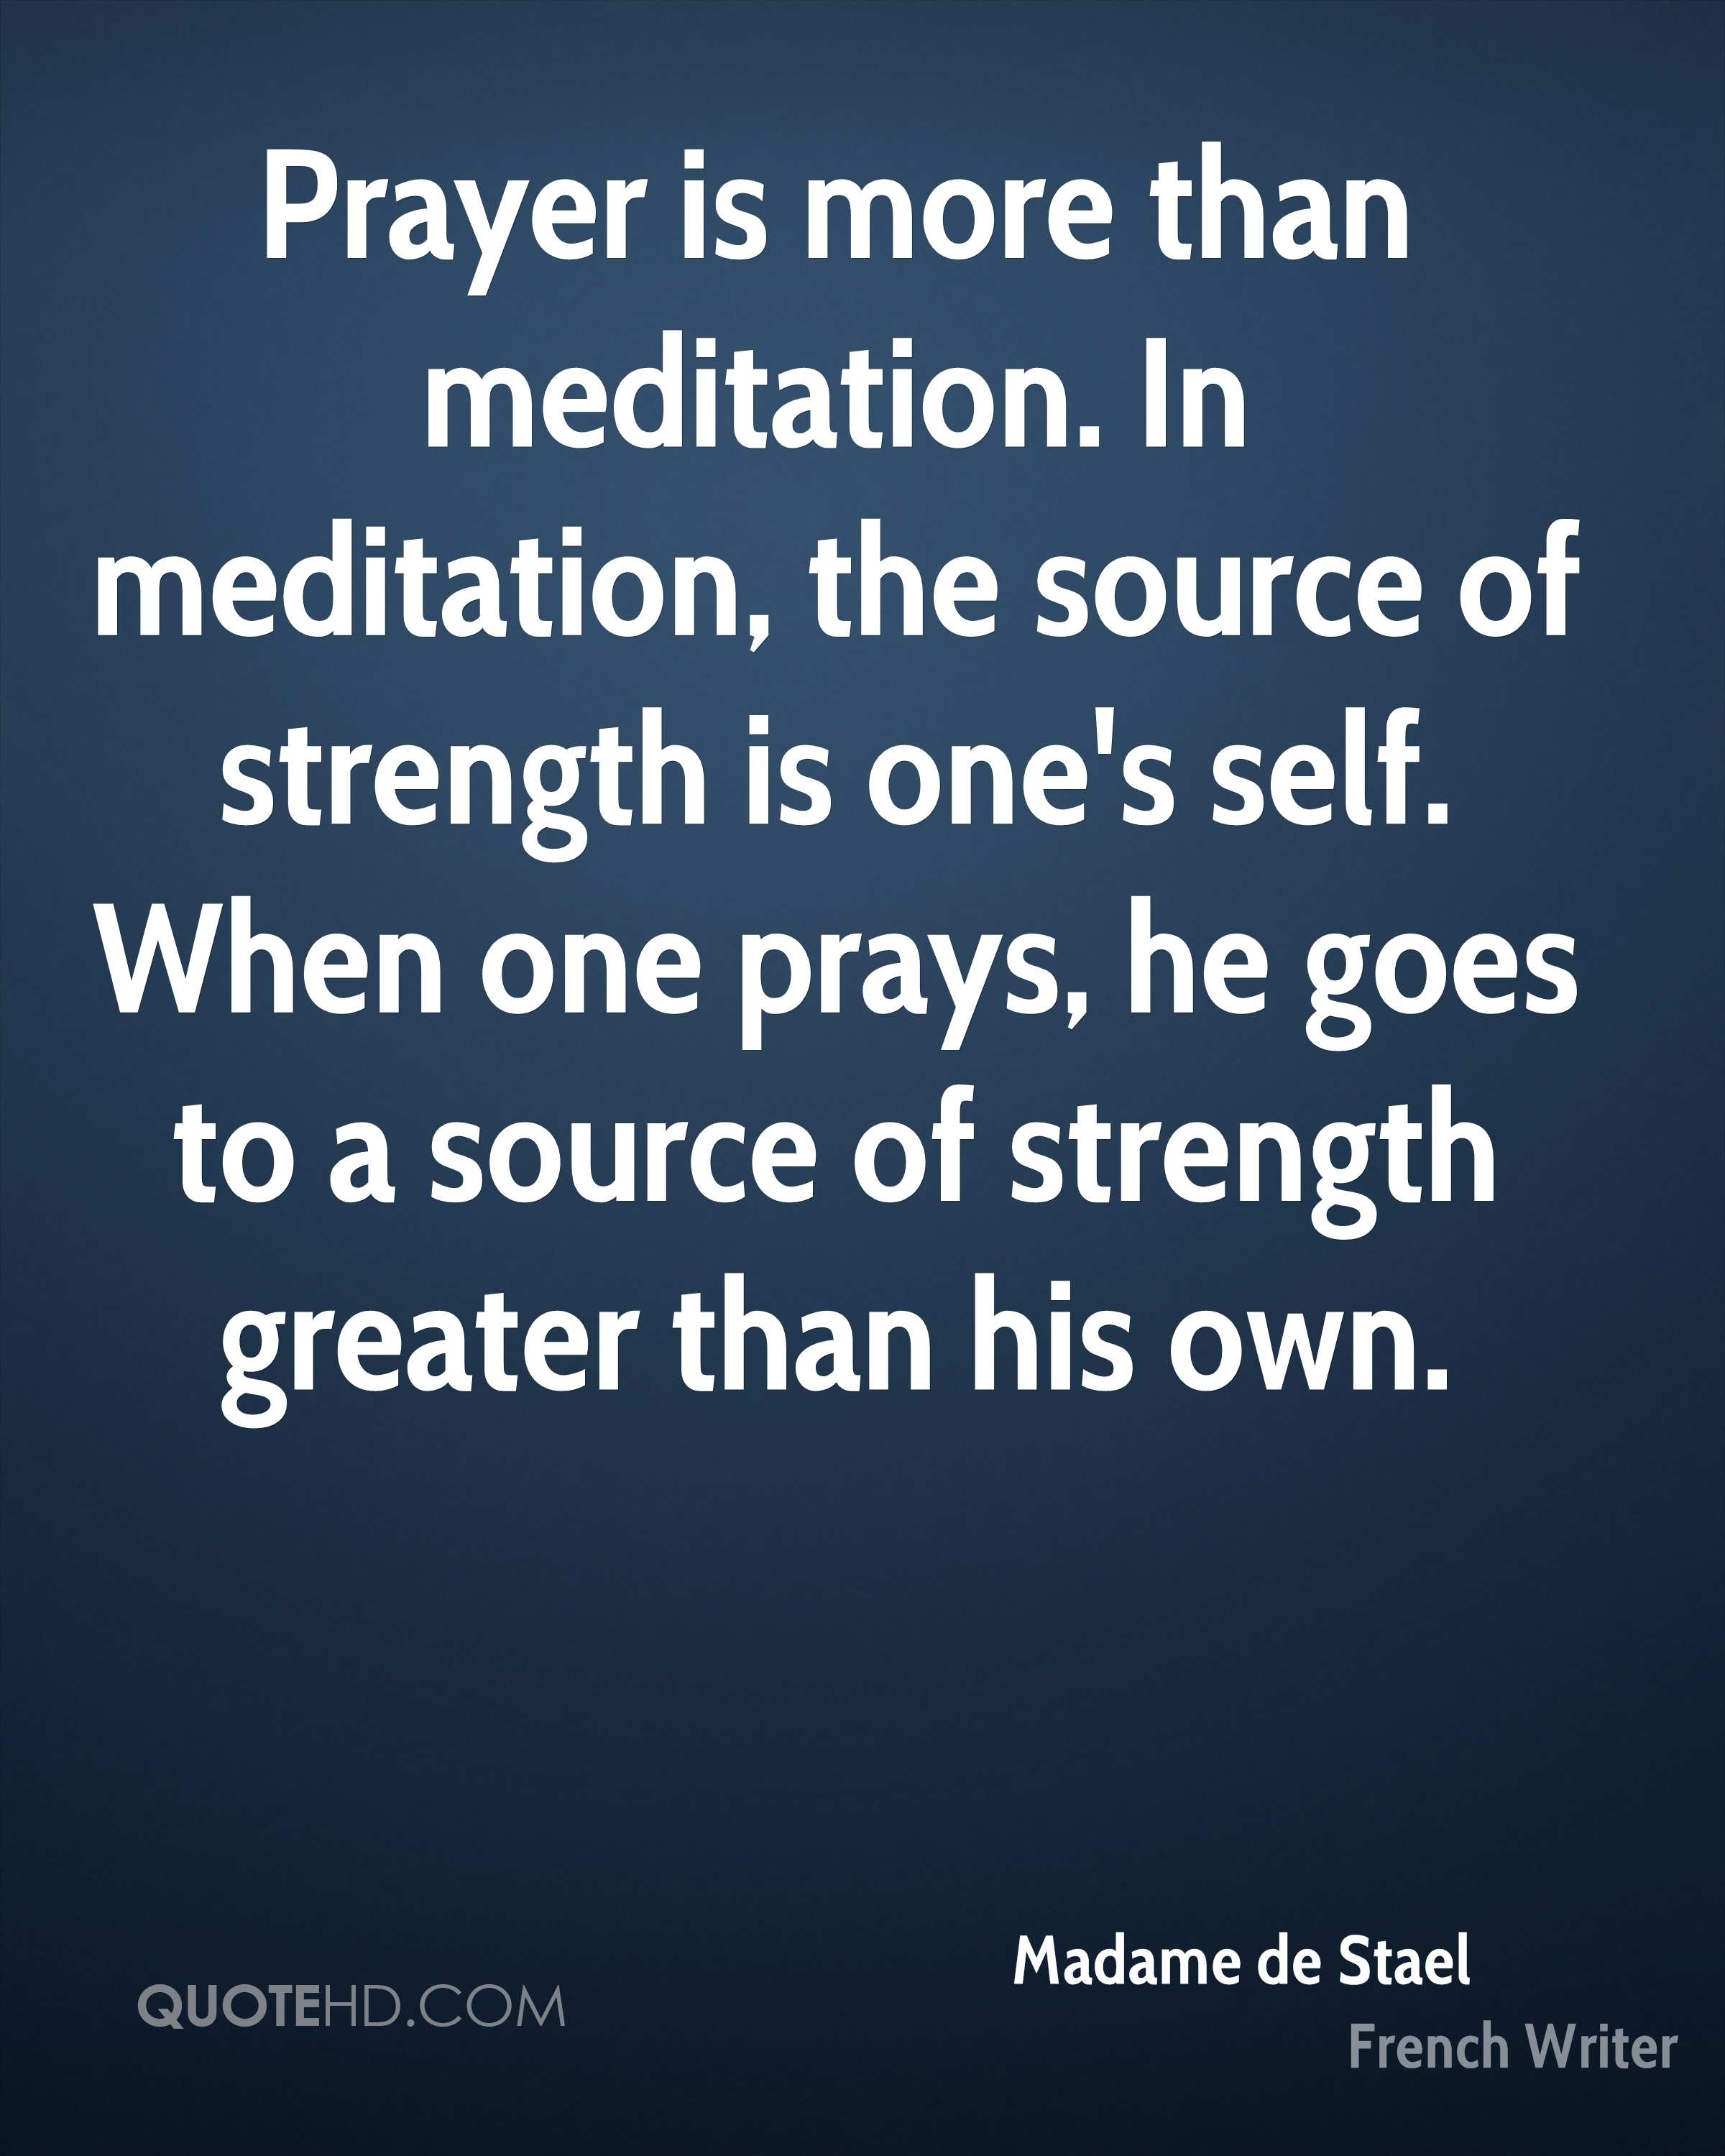 Prayer is more than meditation. In meditation, the source of strength is one's self. When one prays, he goes to a source of strength greater than his own.